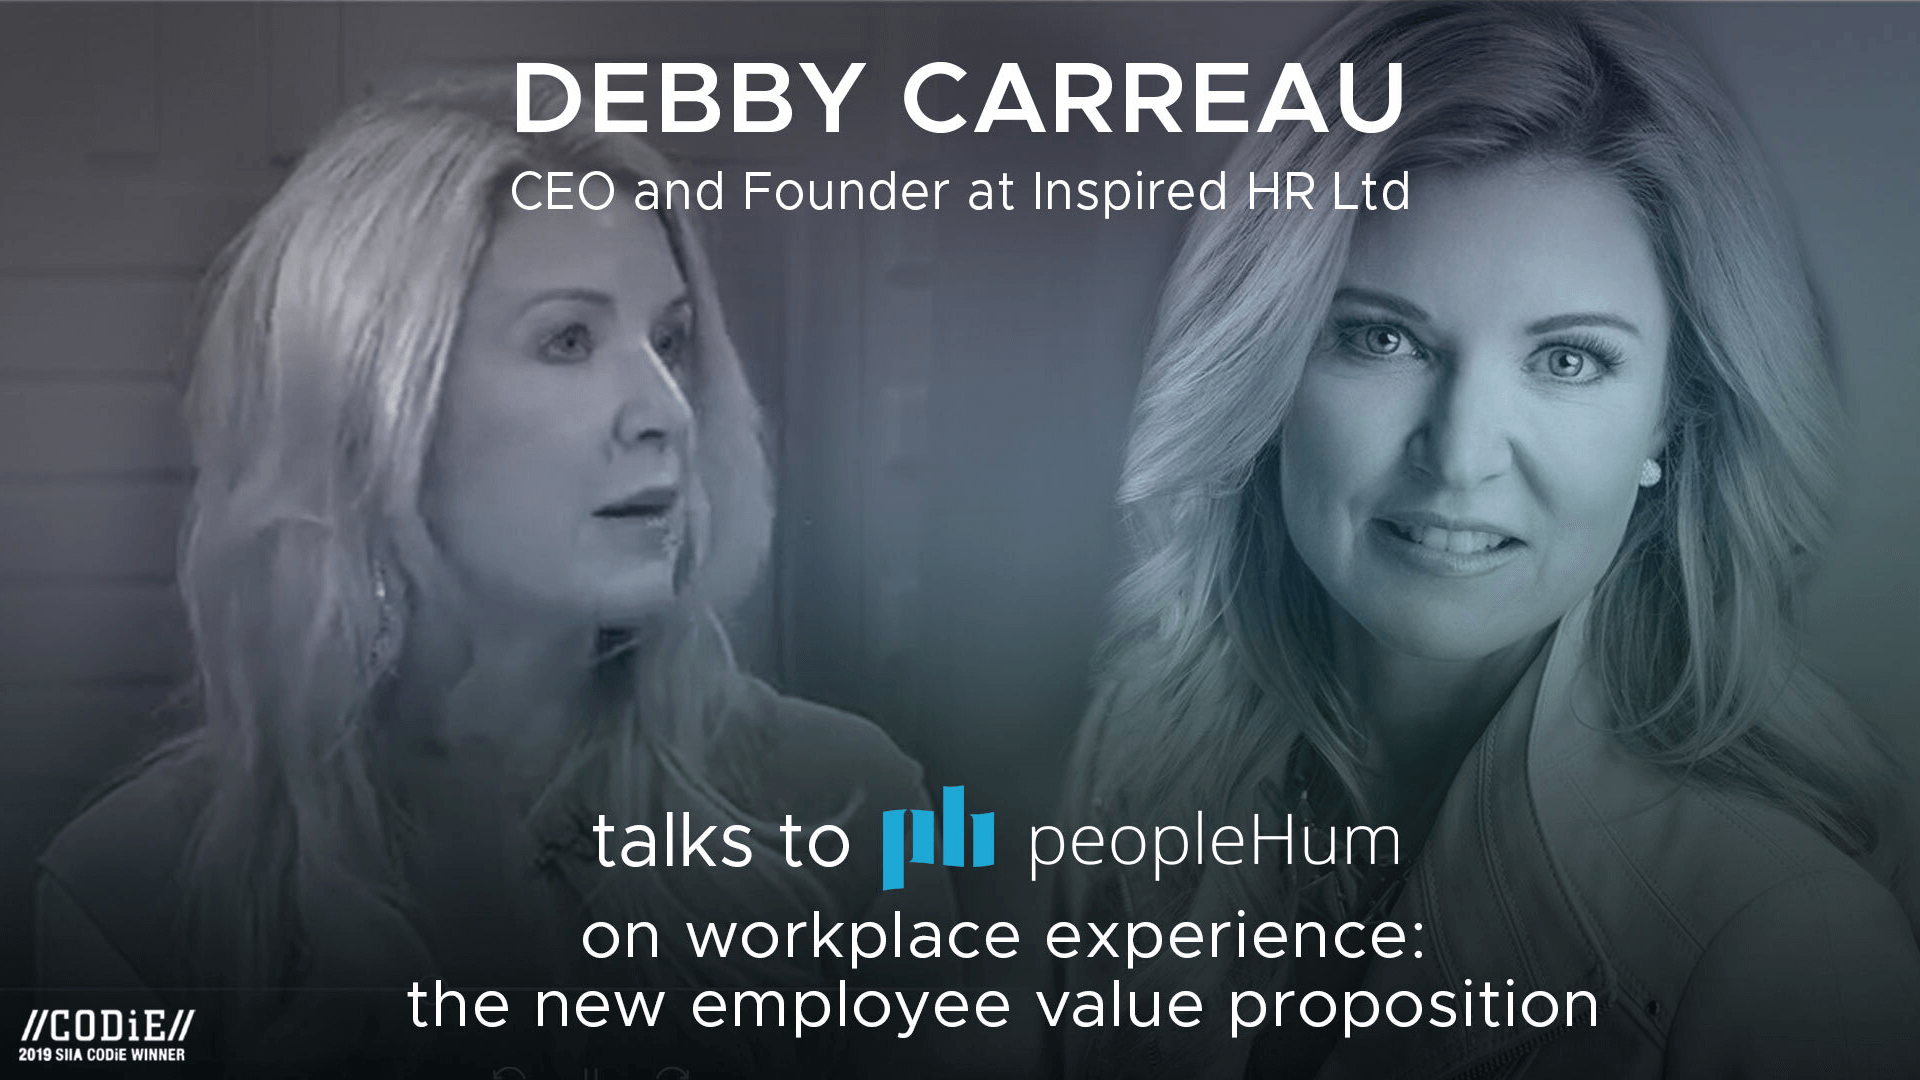 Optimising workplace experience with 'people' - Debby Carreau [Interview]